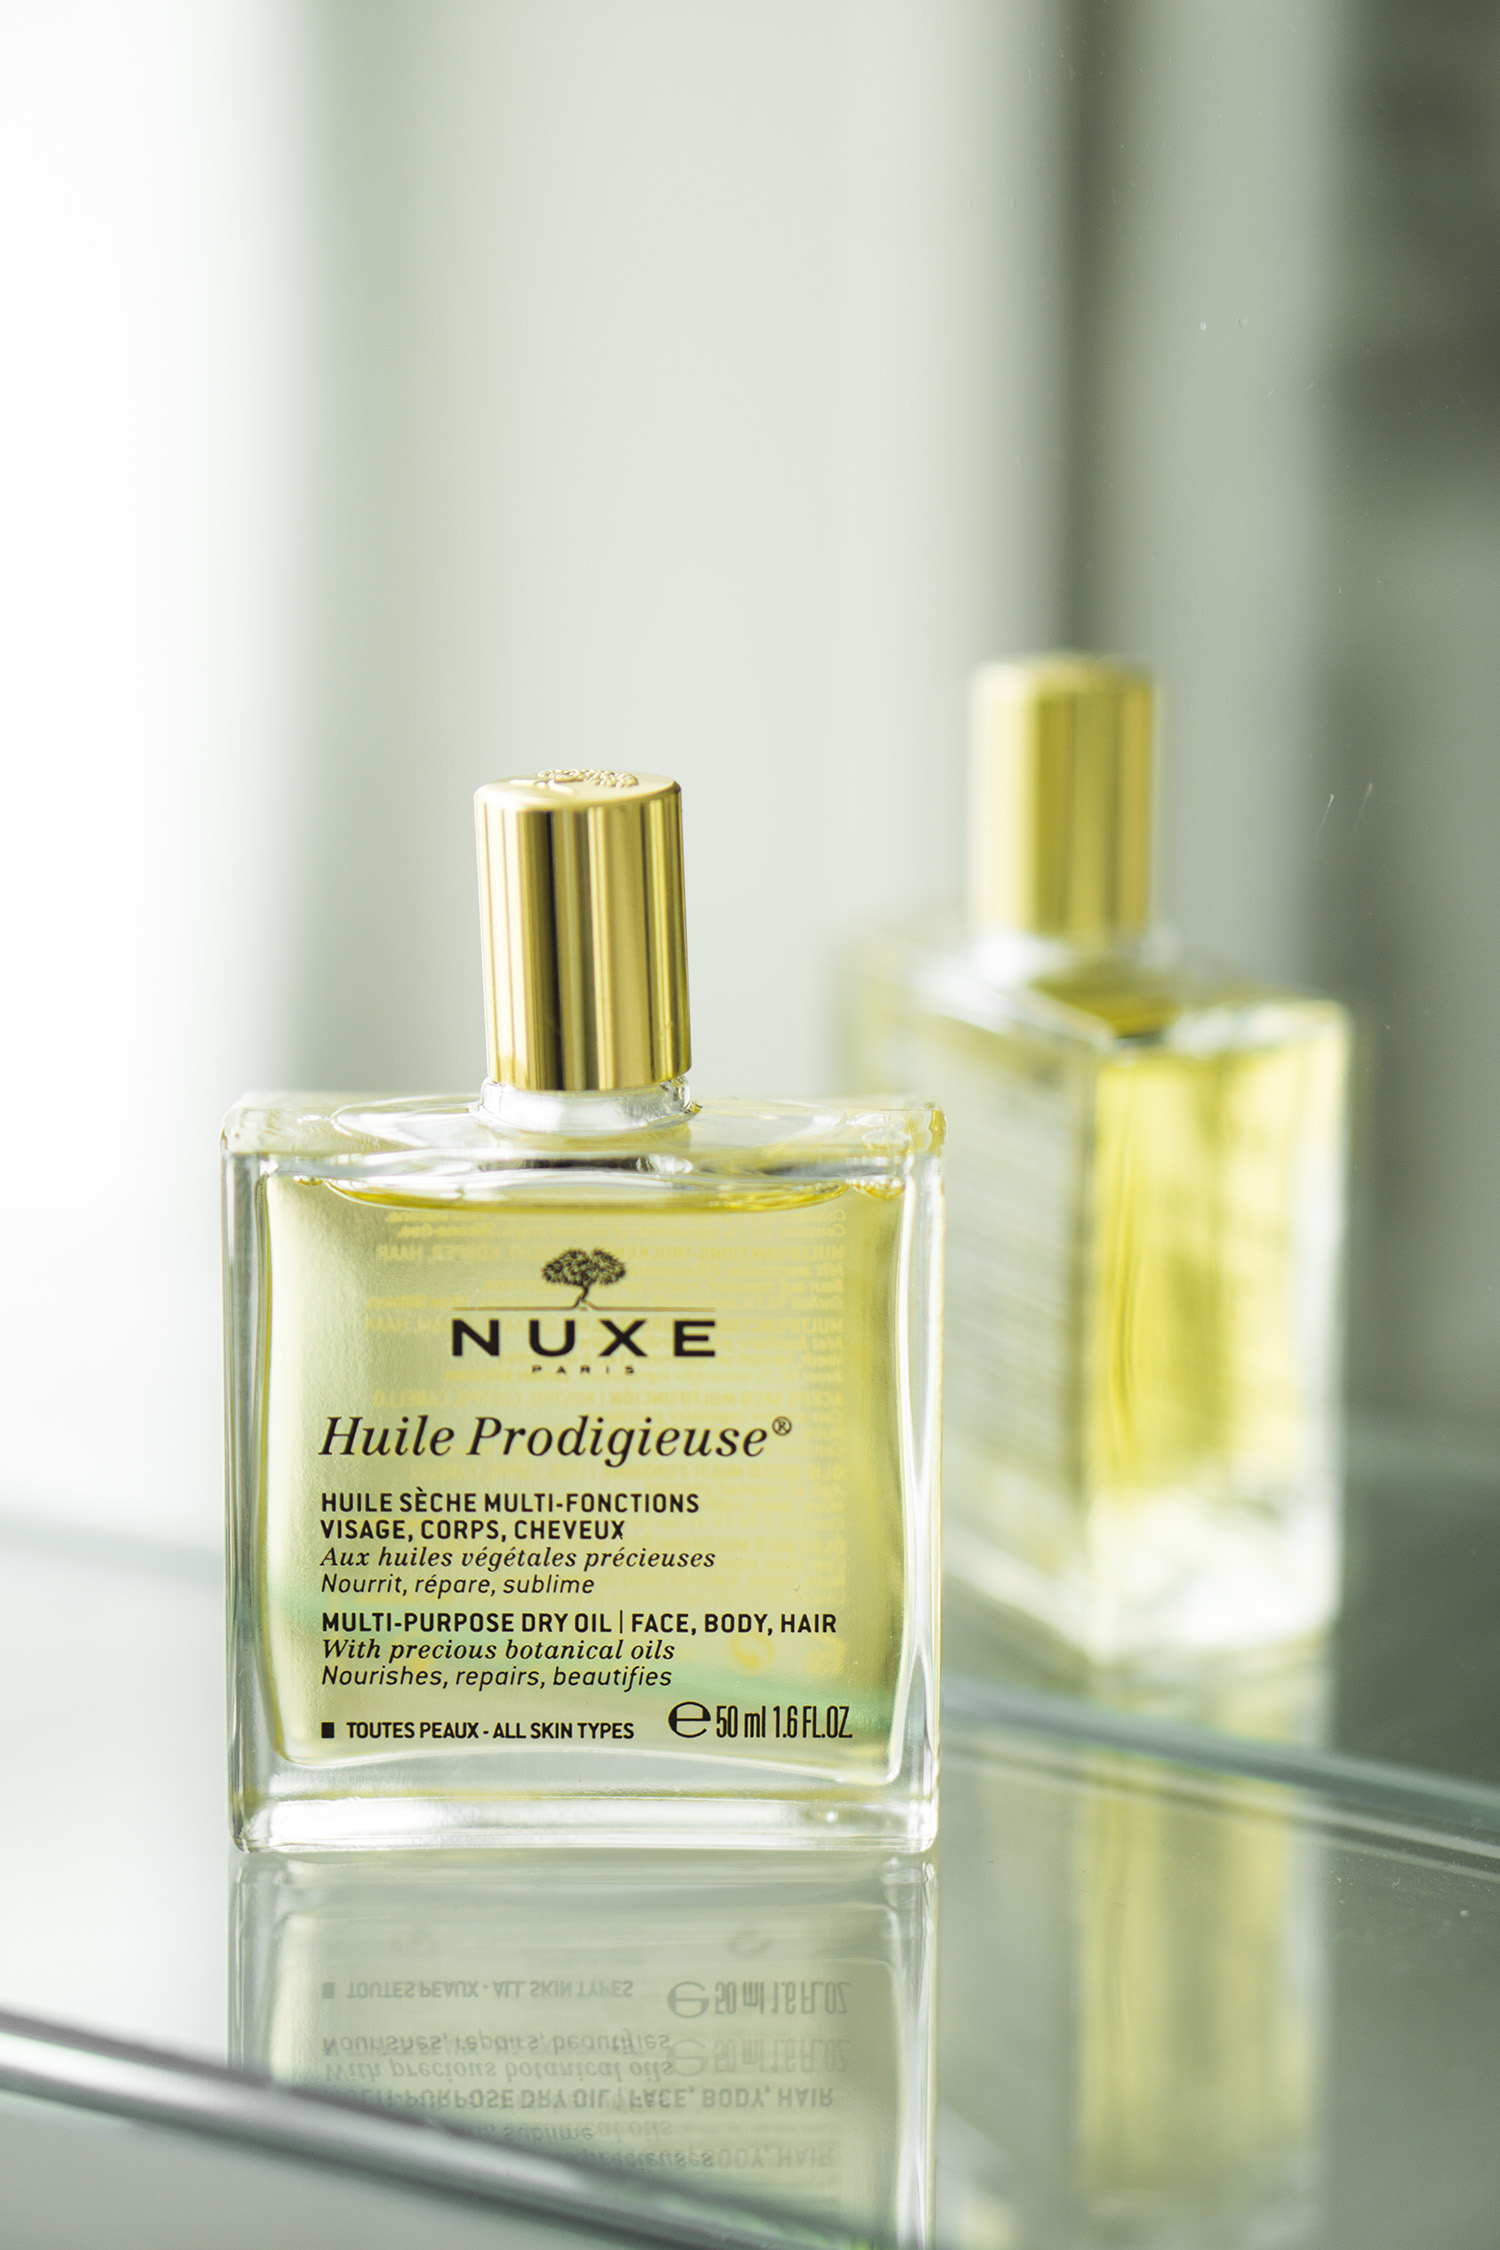 NUXE Huile Prodigieuse Oil - Best Products at French Pharmacies 2017